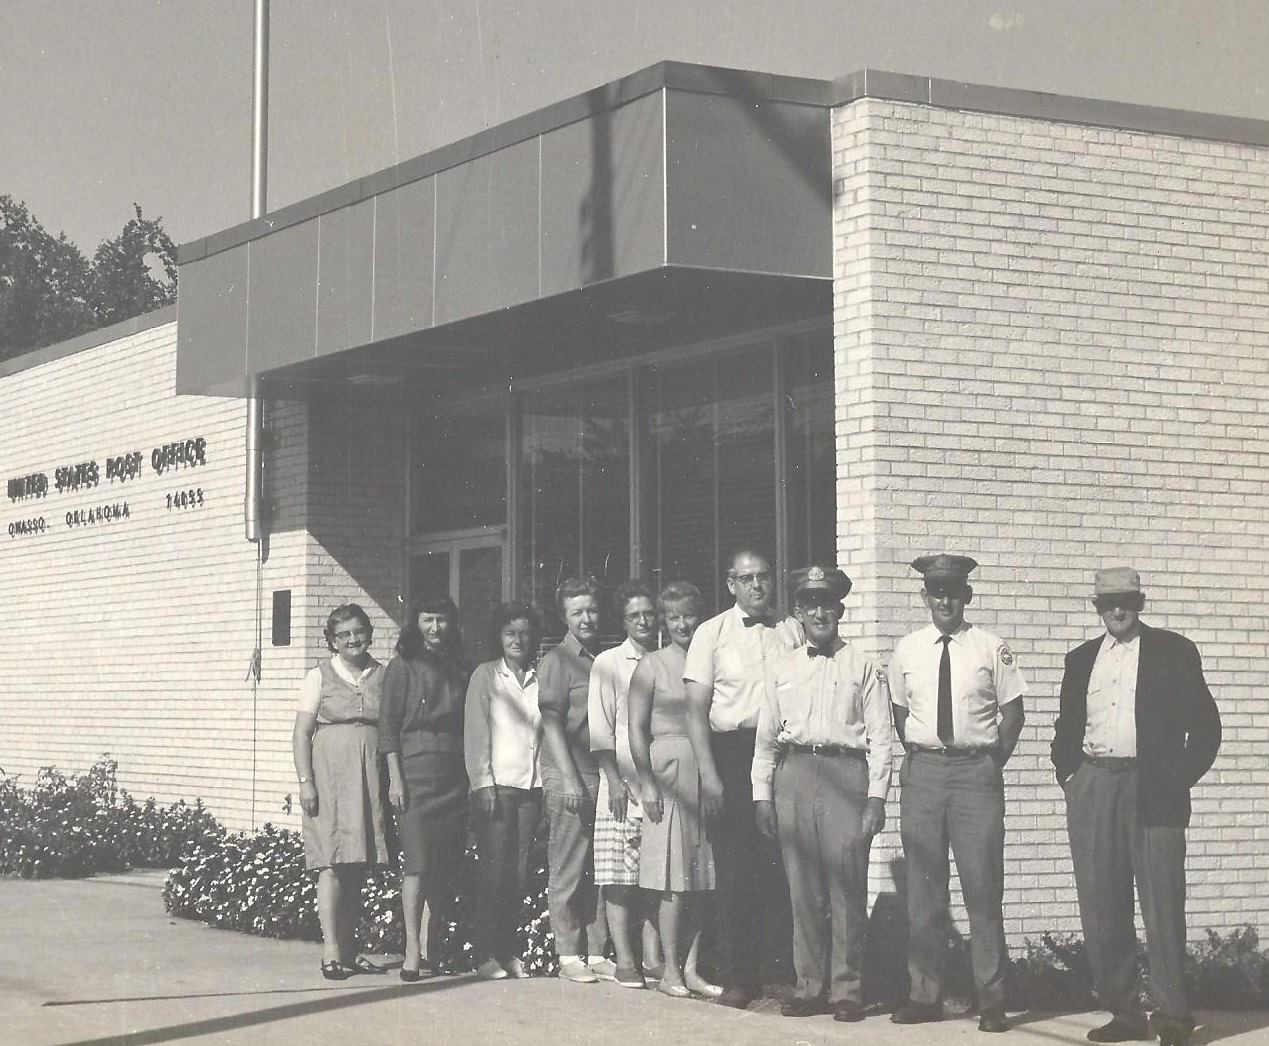 Grand opening of the new Owasso Post Office was held on Feb 1967. This was located on North Main in the 100 block. It was later sold to the City and was used as the police department.